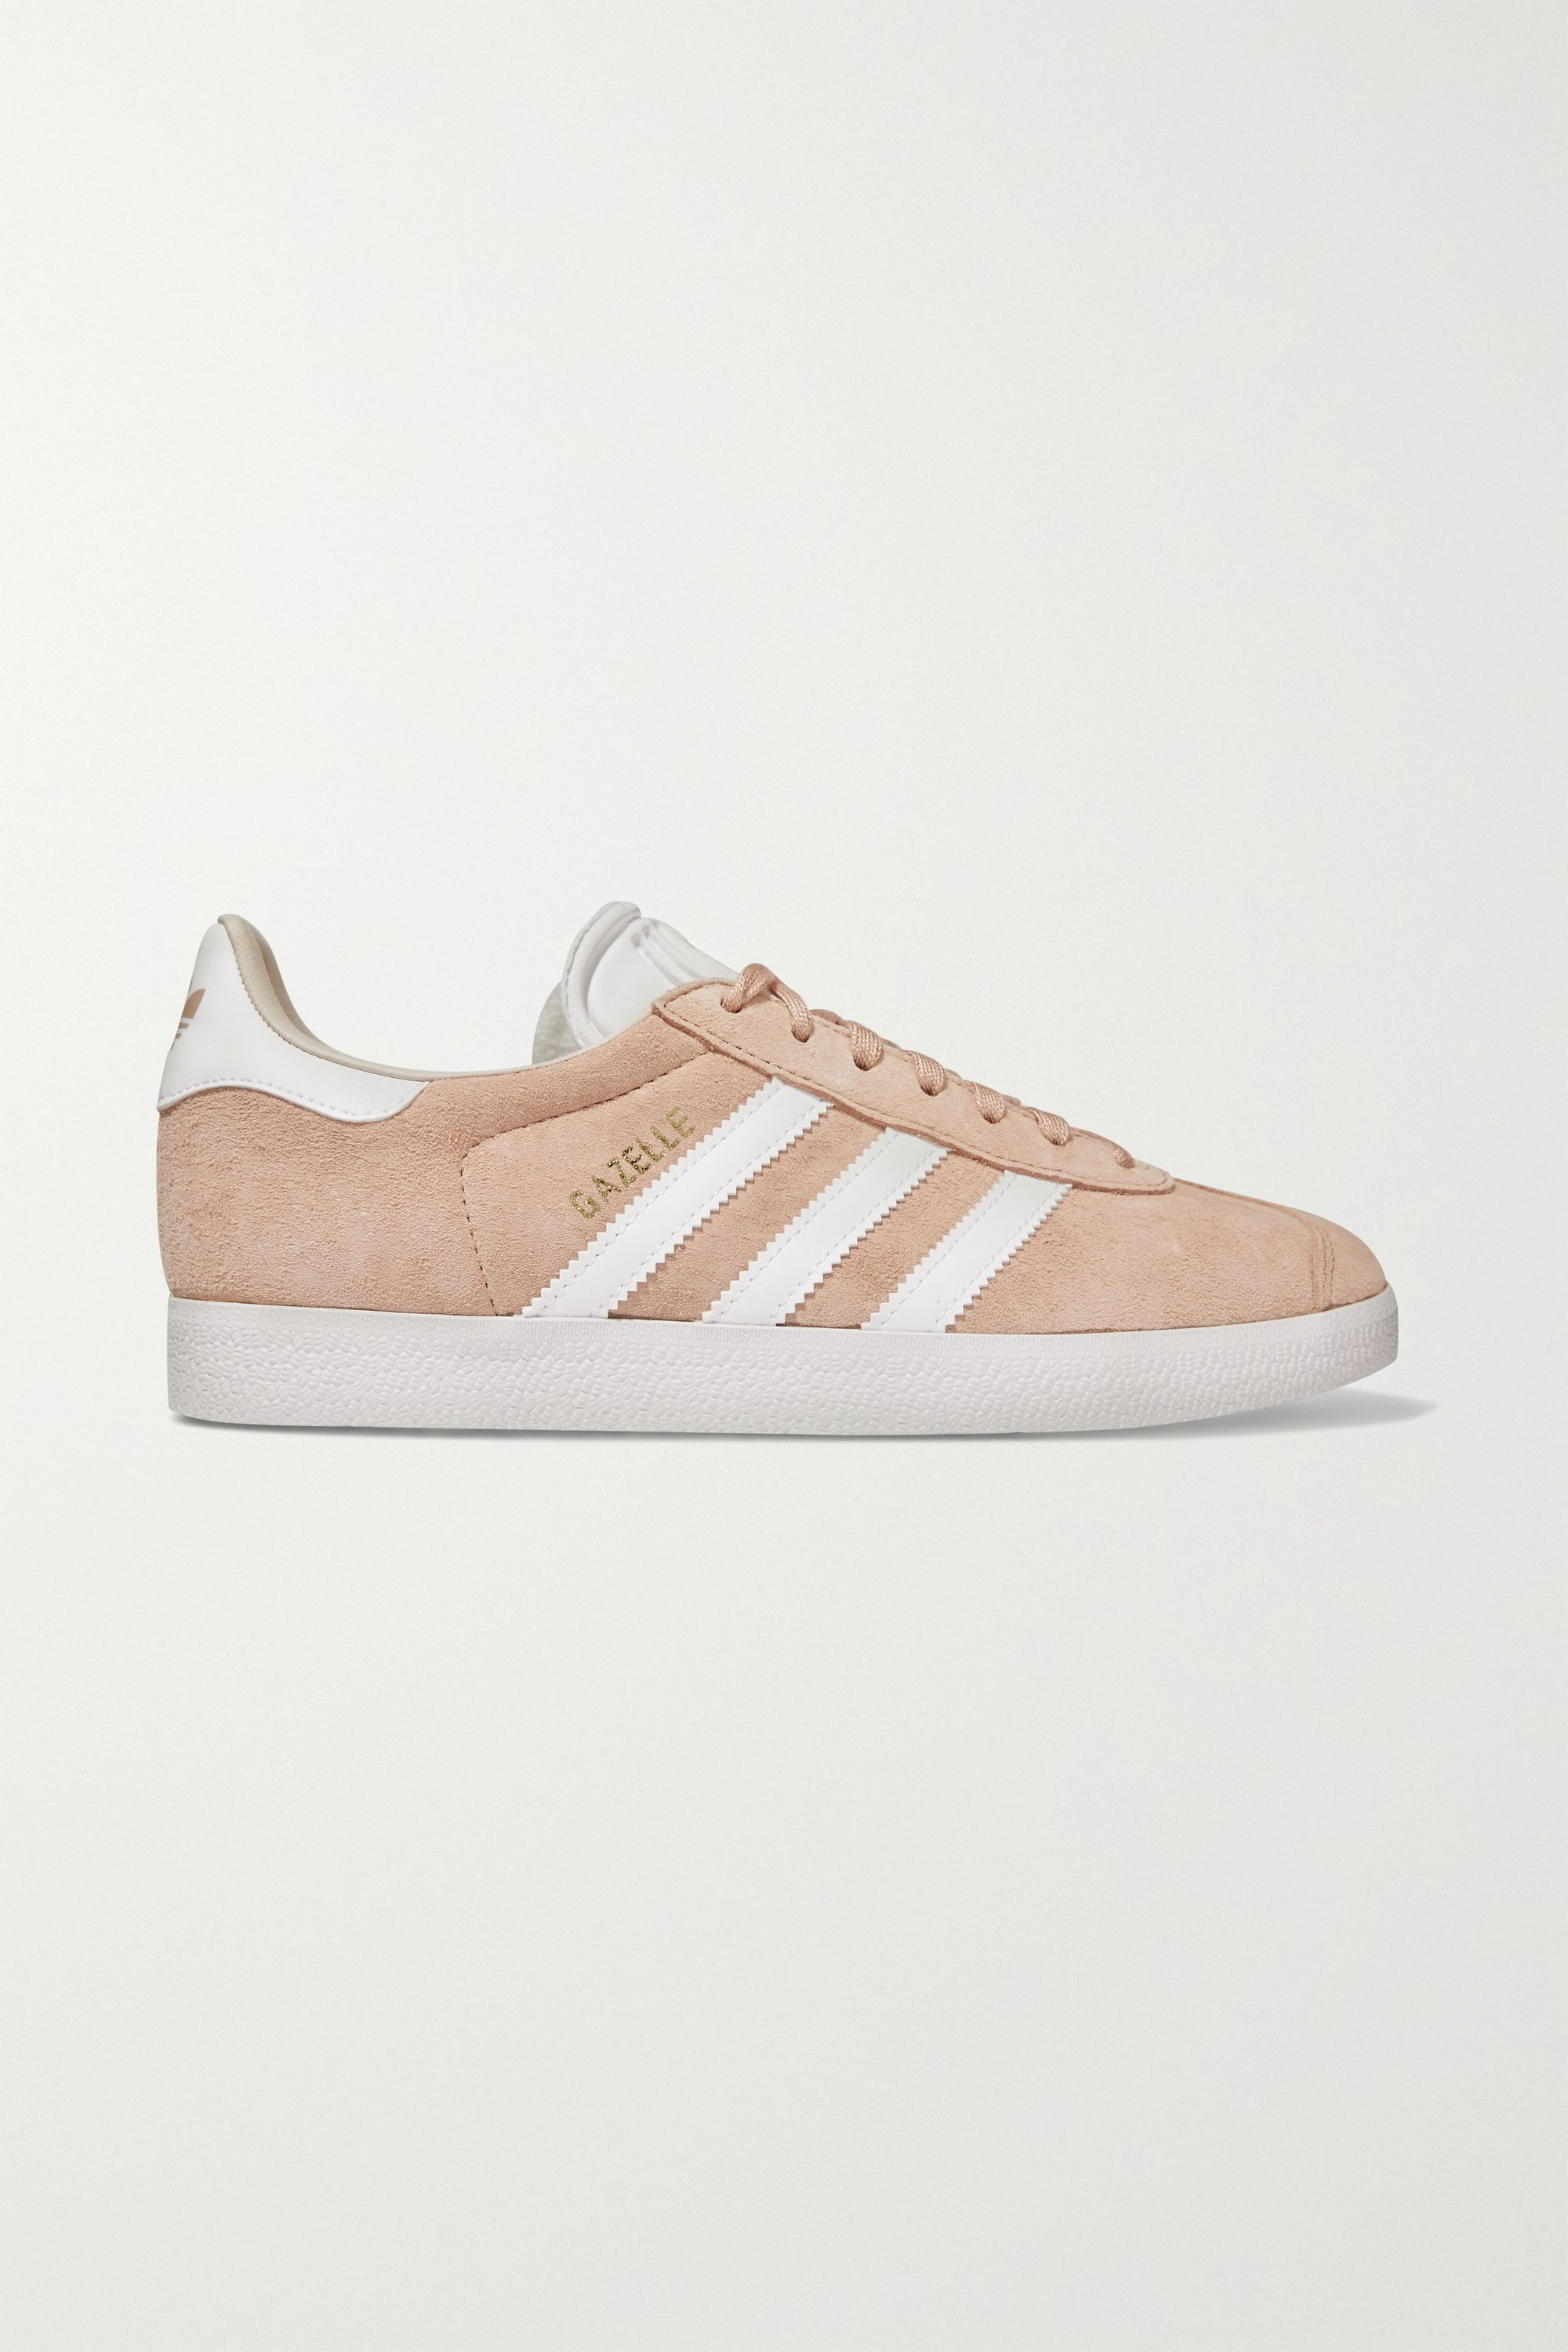 Pastel pink Gazelle suede and leather